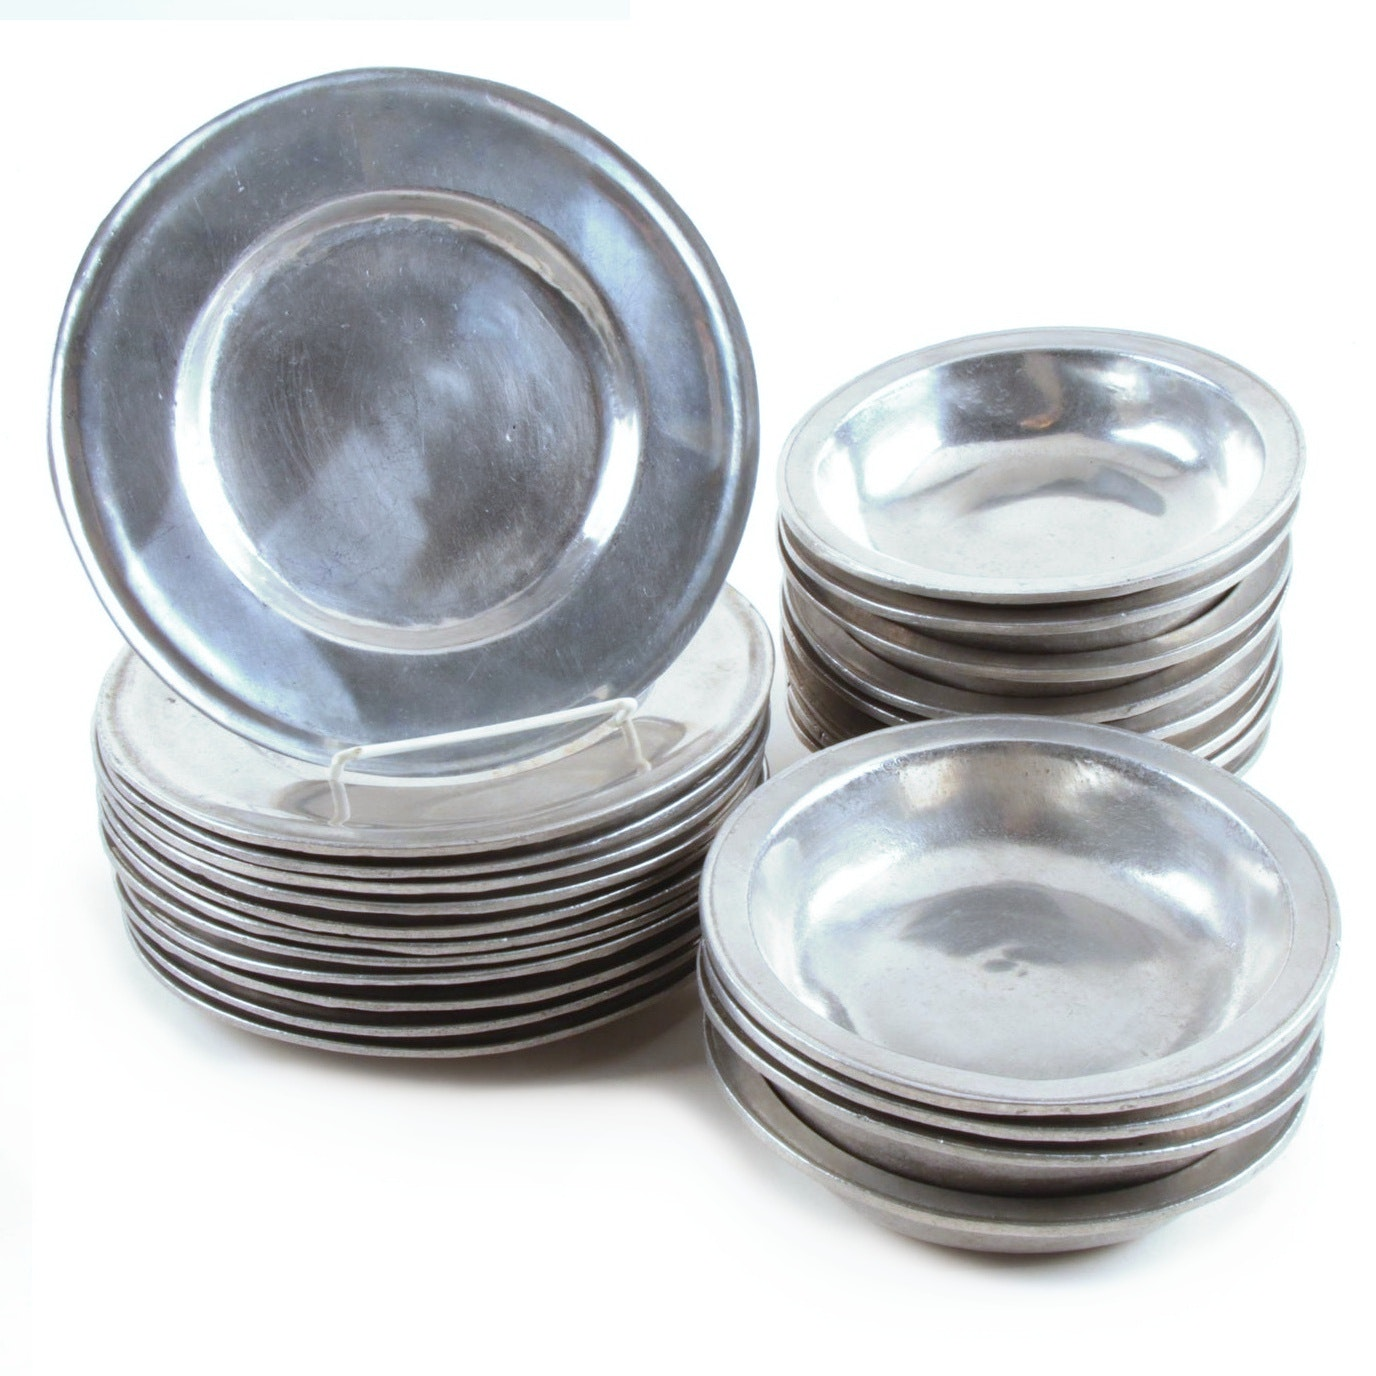 Pewter Salad Plate and Bowl Set, Early 20th Century